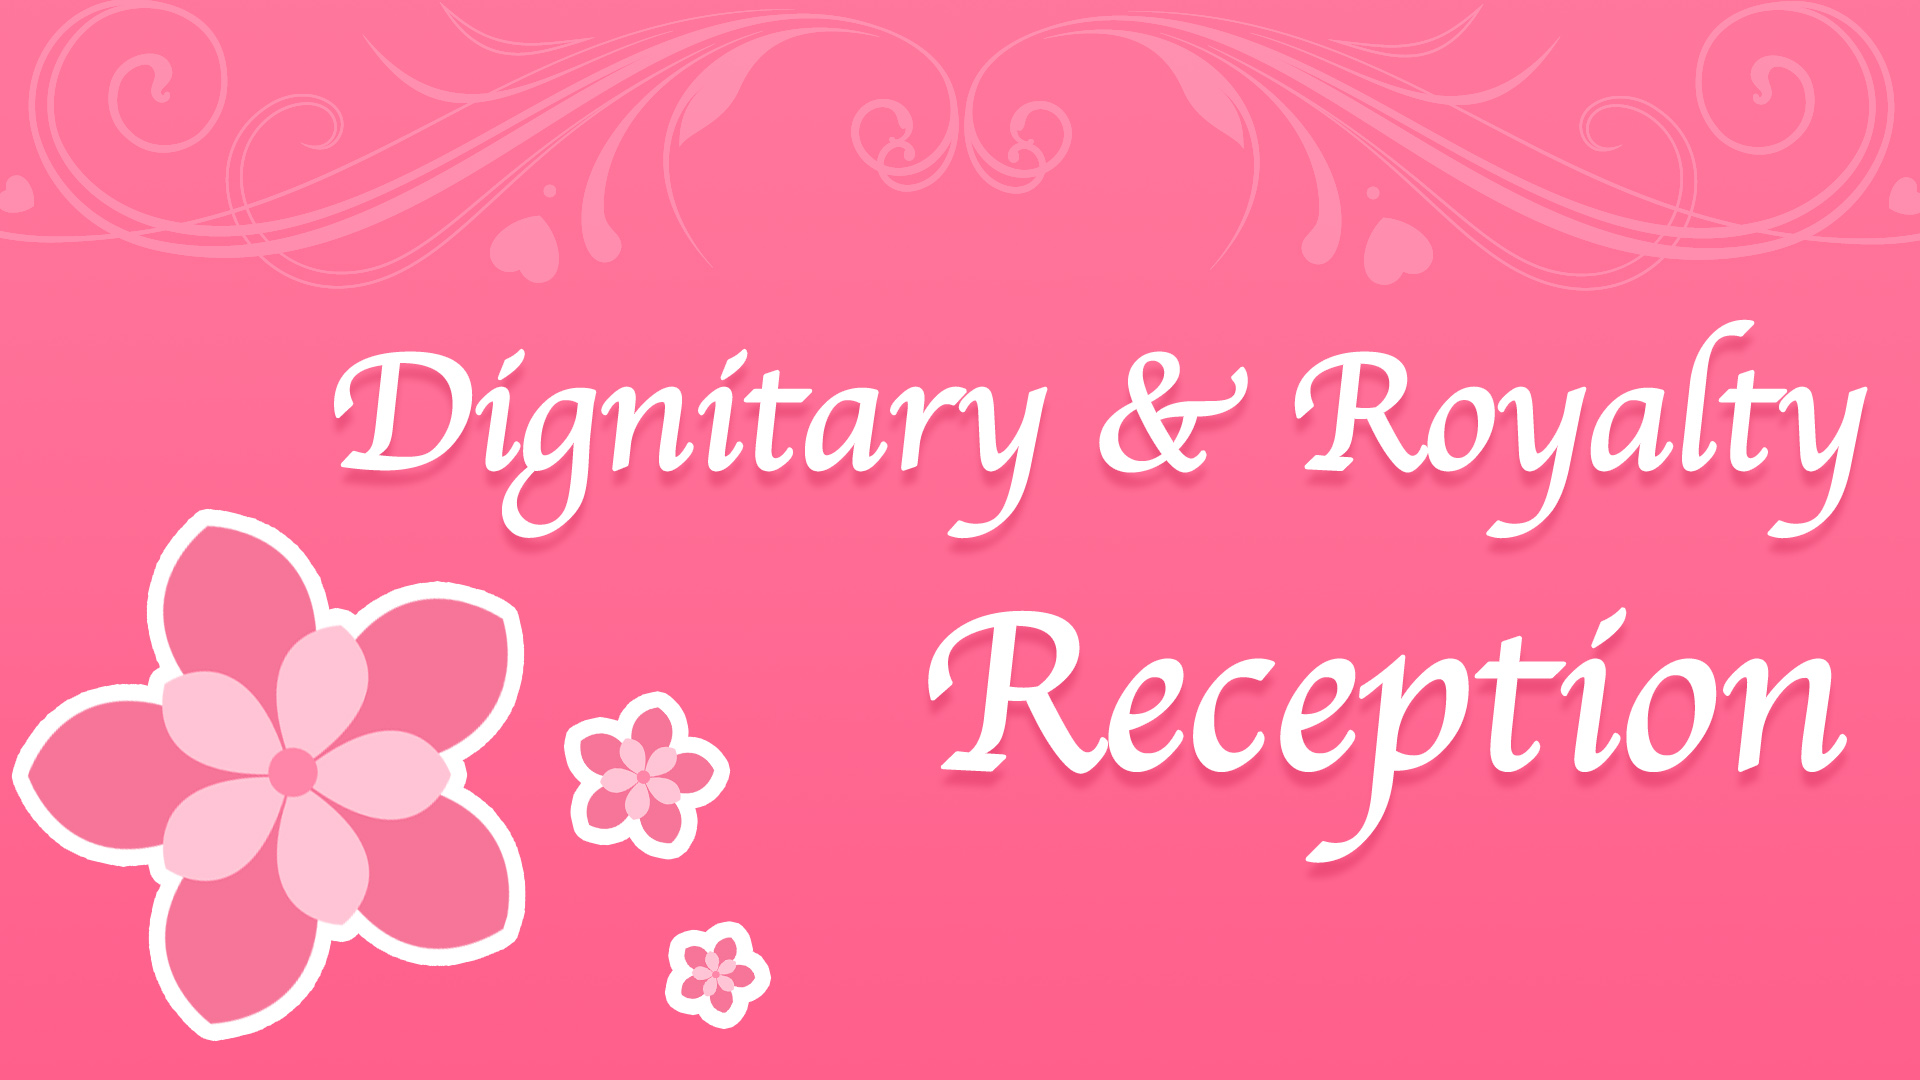 Dignitary & Royalty Reception